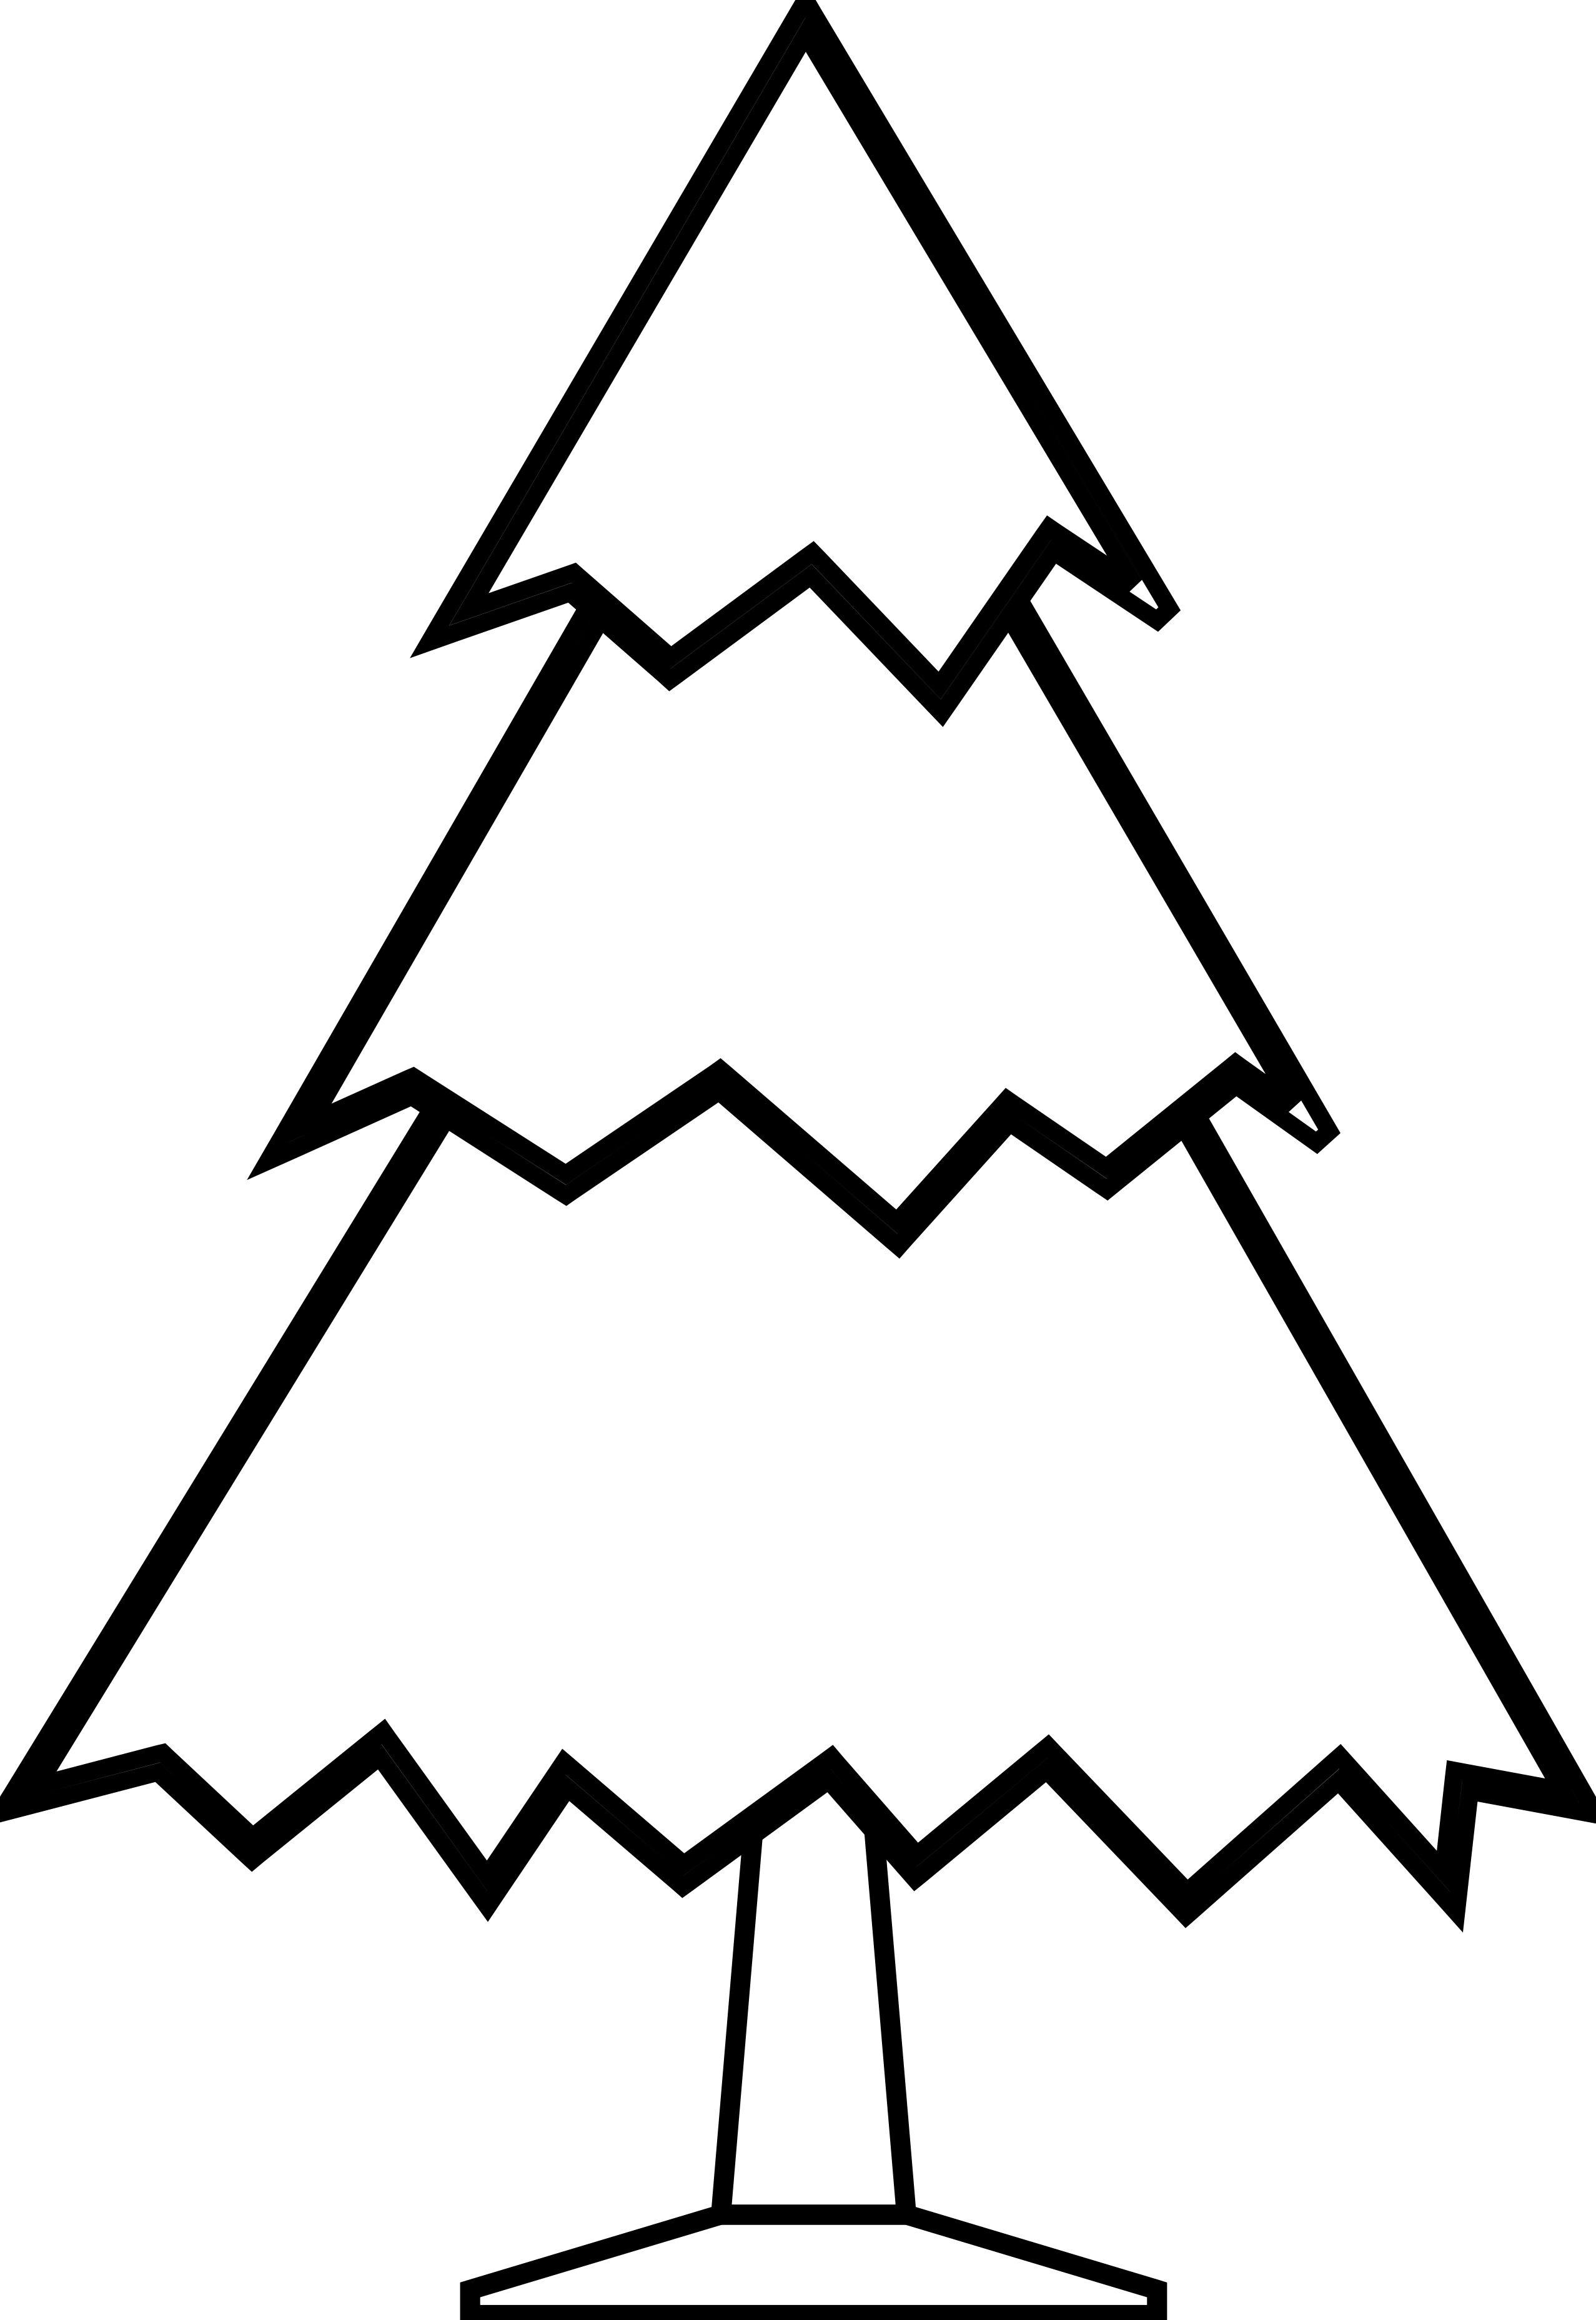 Free christmas line download. Law drawing simple clip art freeuse stock